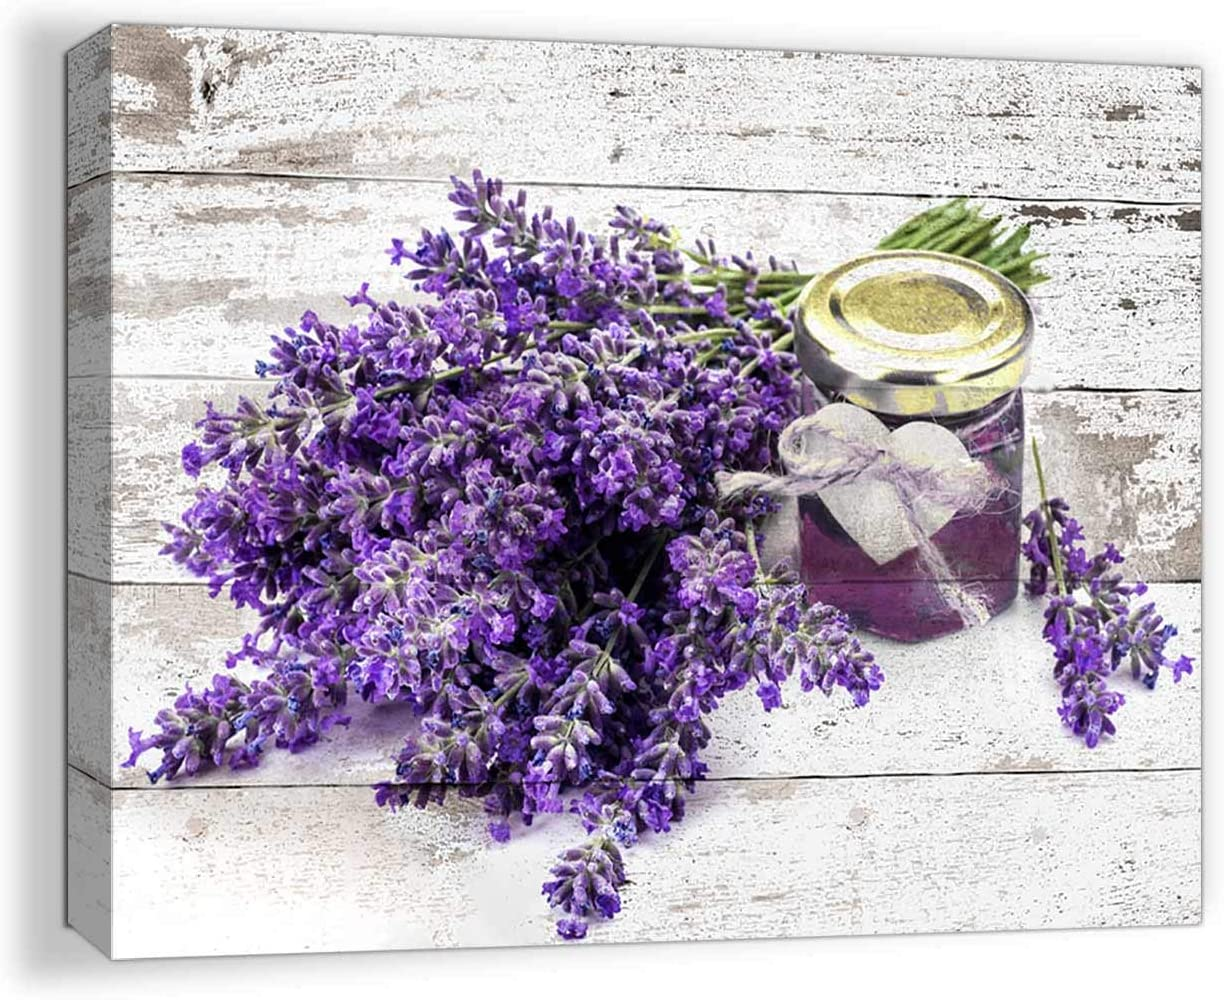 Bathrooms Purple Lavender Pictures Wall Decor Artwork for Wall Bathroom Decor Wall Art Modern Home Decor Bedroom Art Girls Flowers Wall Decor Rustic Canvas Framed Kitchen Wall Decoration Size 12x16